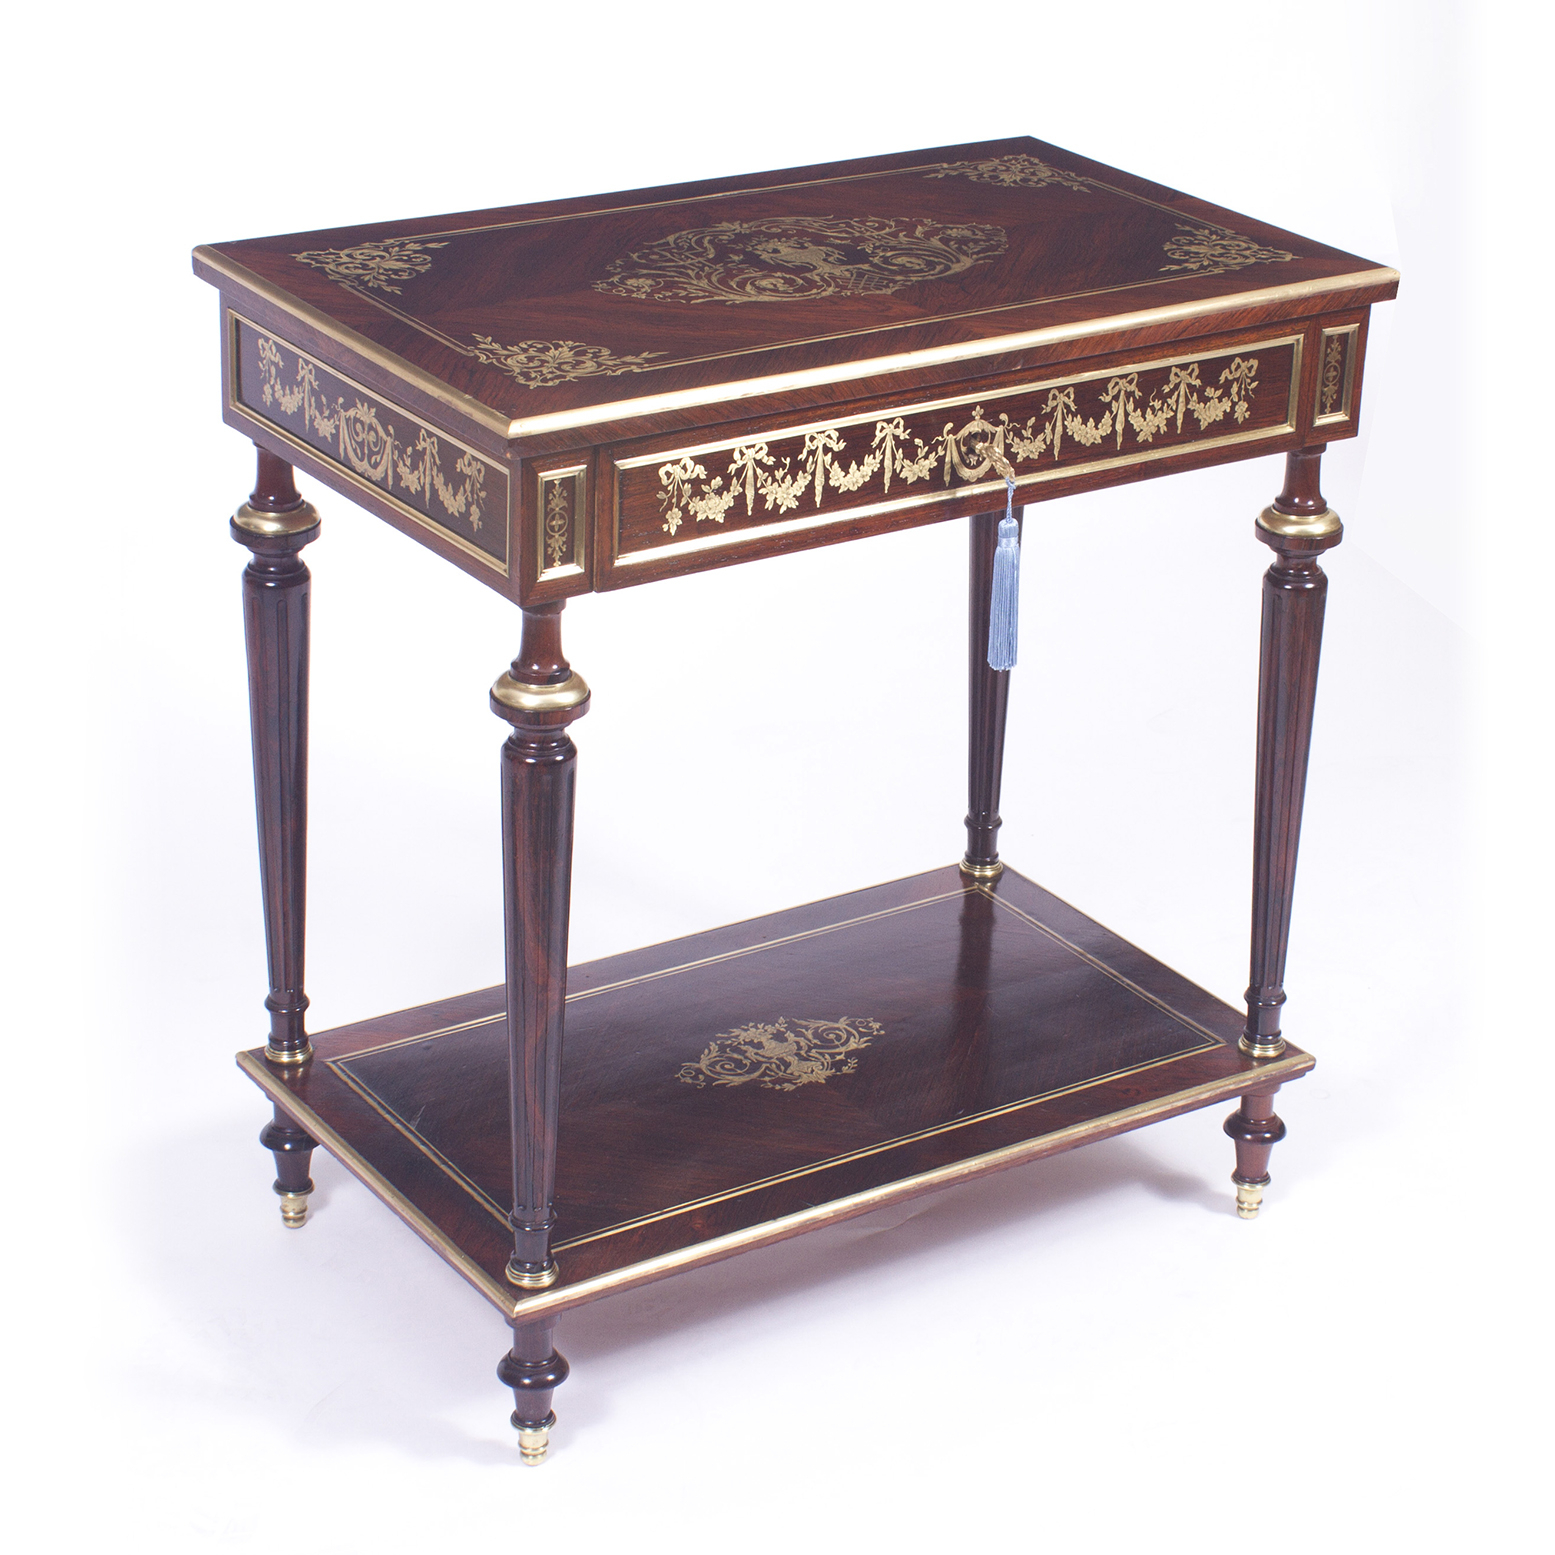 Antique French Cut Brass Inlaid Side / Dressing Table Regarding Most Recently Released Tuscan Chestnut Toscana Pedestal Extending Dining Tables (View 24 of 25)